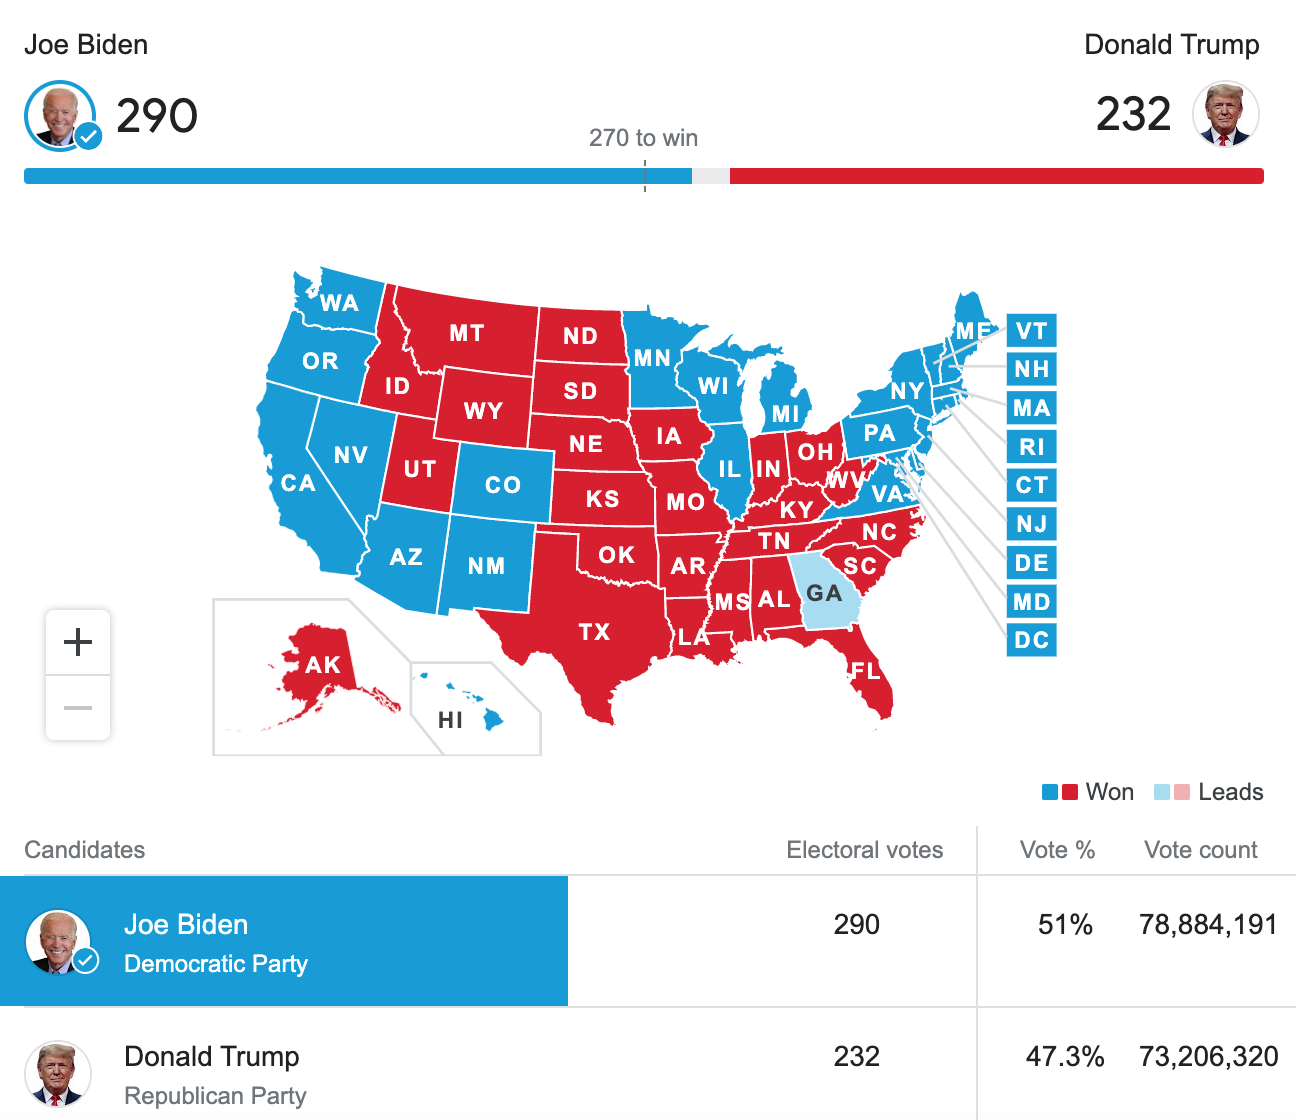 2020 U.S. election results